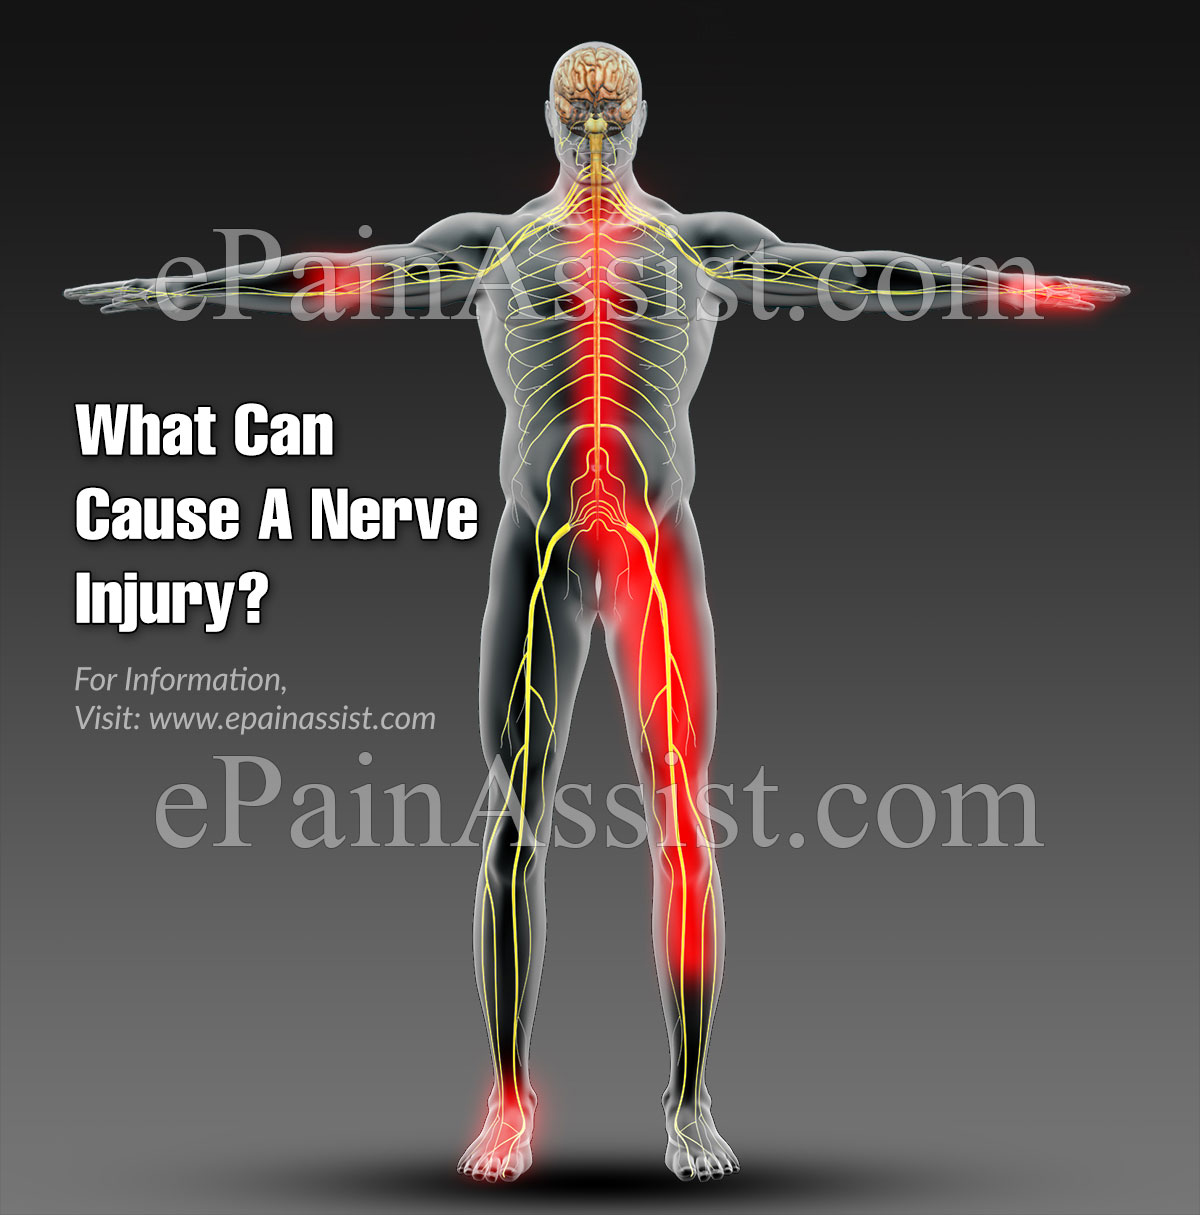 What Can Cause A Nerve Injury?